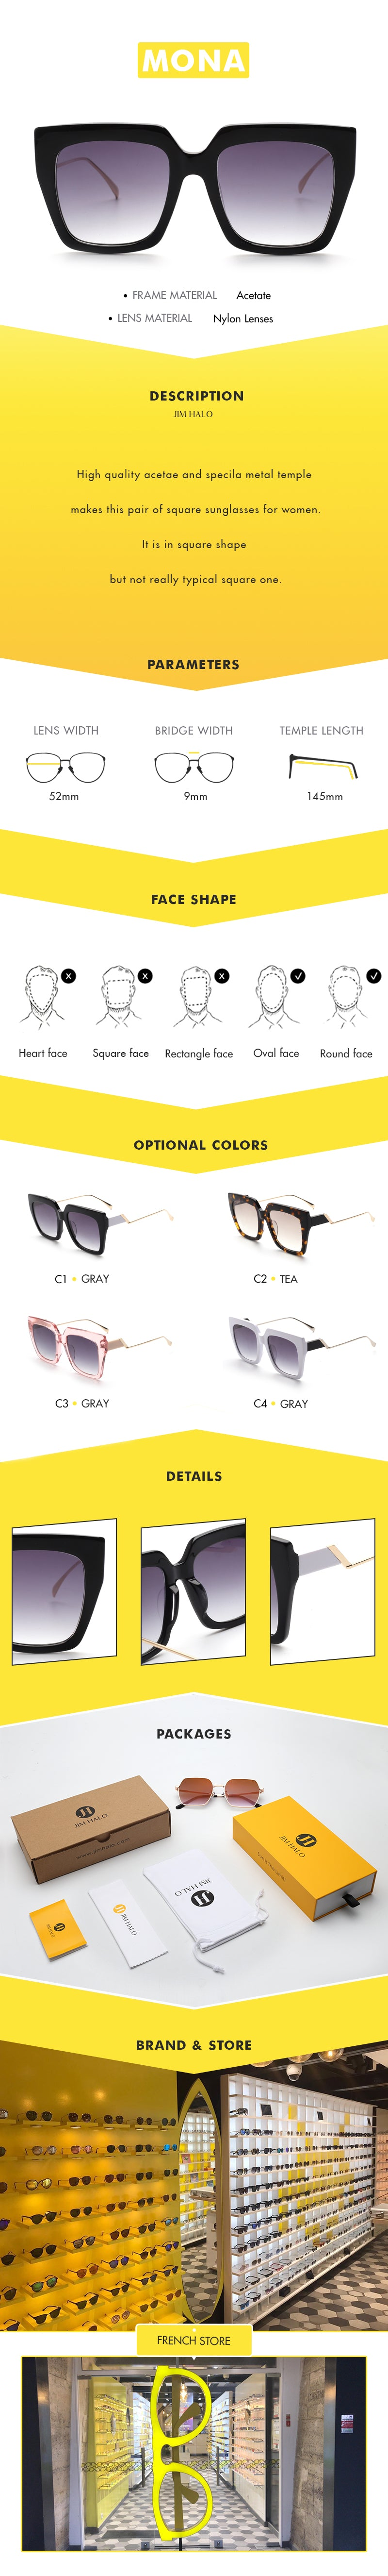 High quality acetae and specila metal temple makes this pair of square sunglasses for women.It is in square shape but not really typical square one.